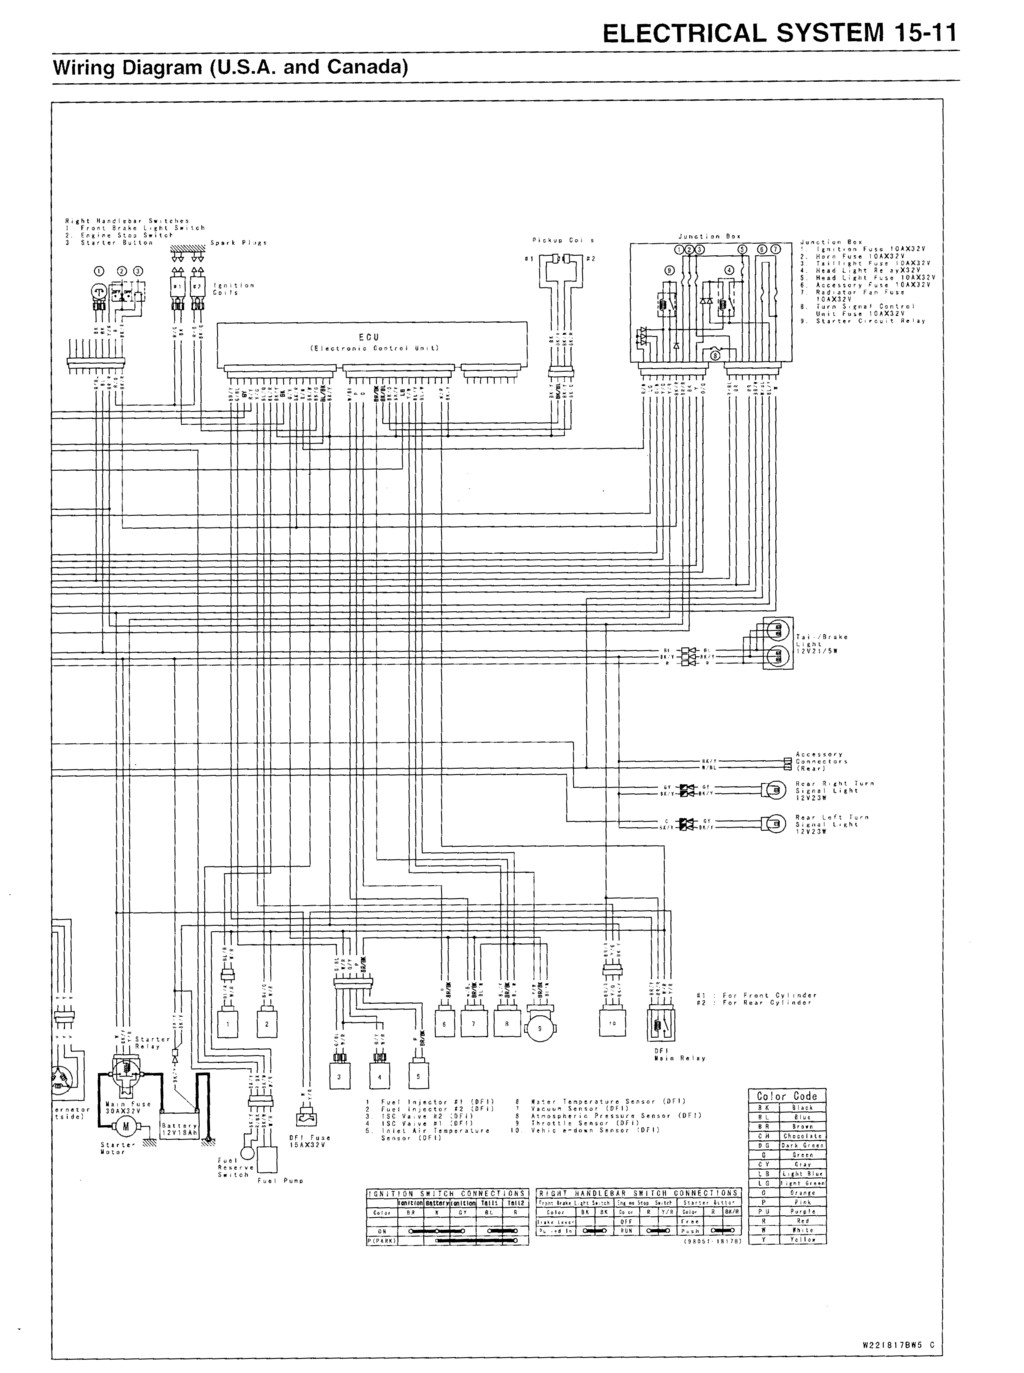 vulcan wiring diagrams gadget 39 s fixit page. Black Bedroom Furniture Sets. Home Design Ideas